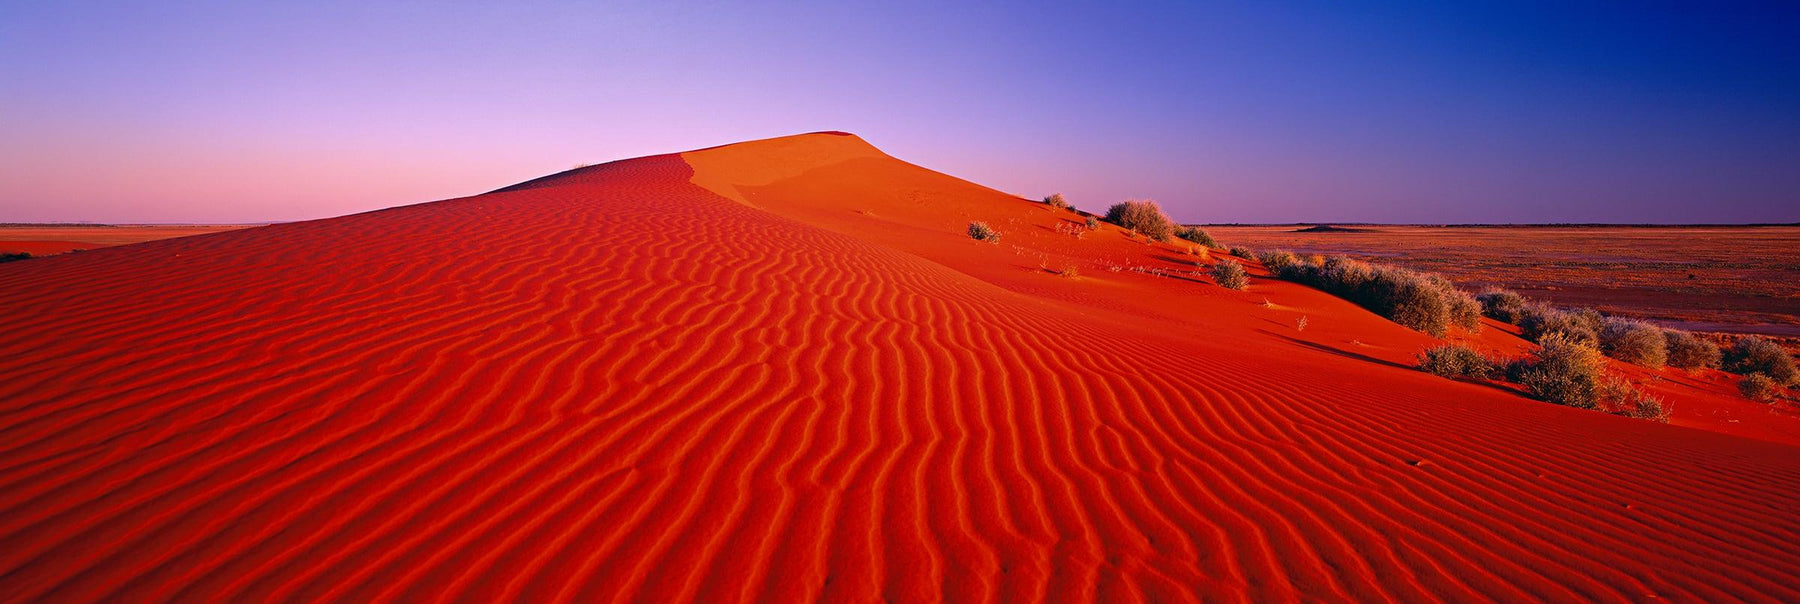 Orange sand dune in the Desert of Northern Territory Australia under a pink and purple sky